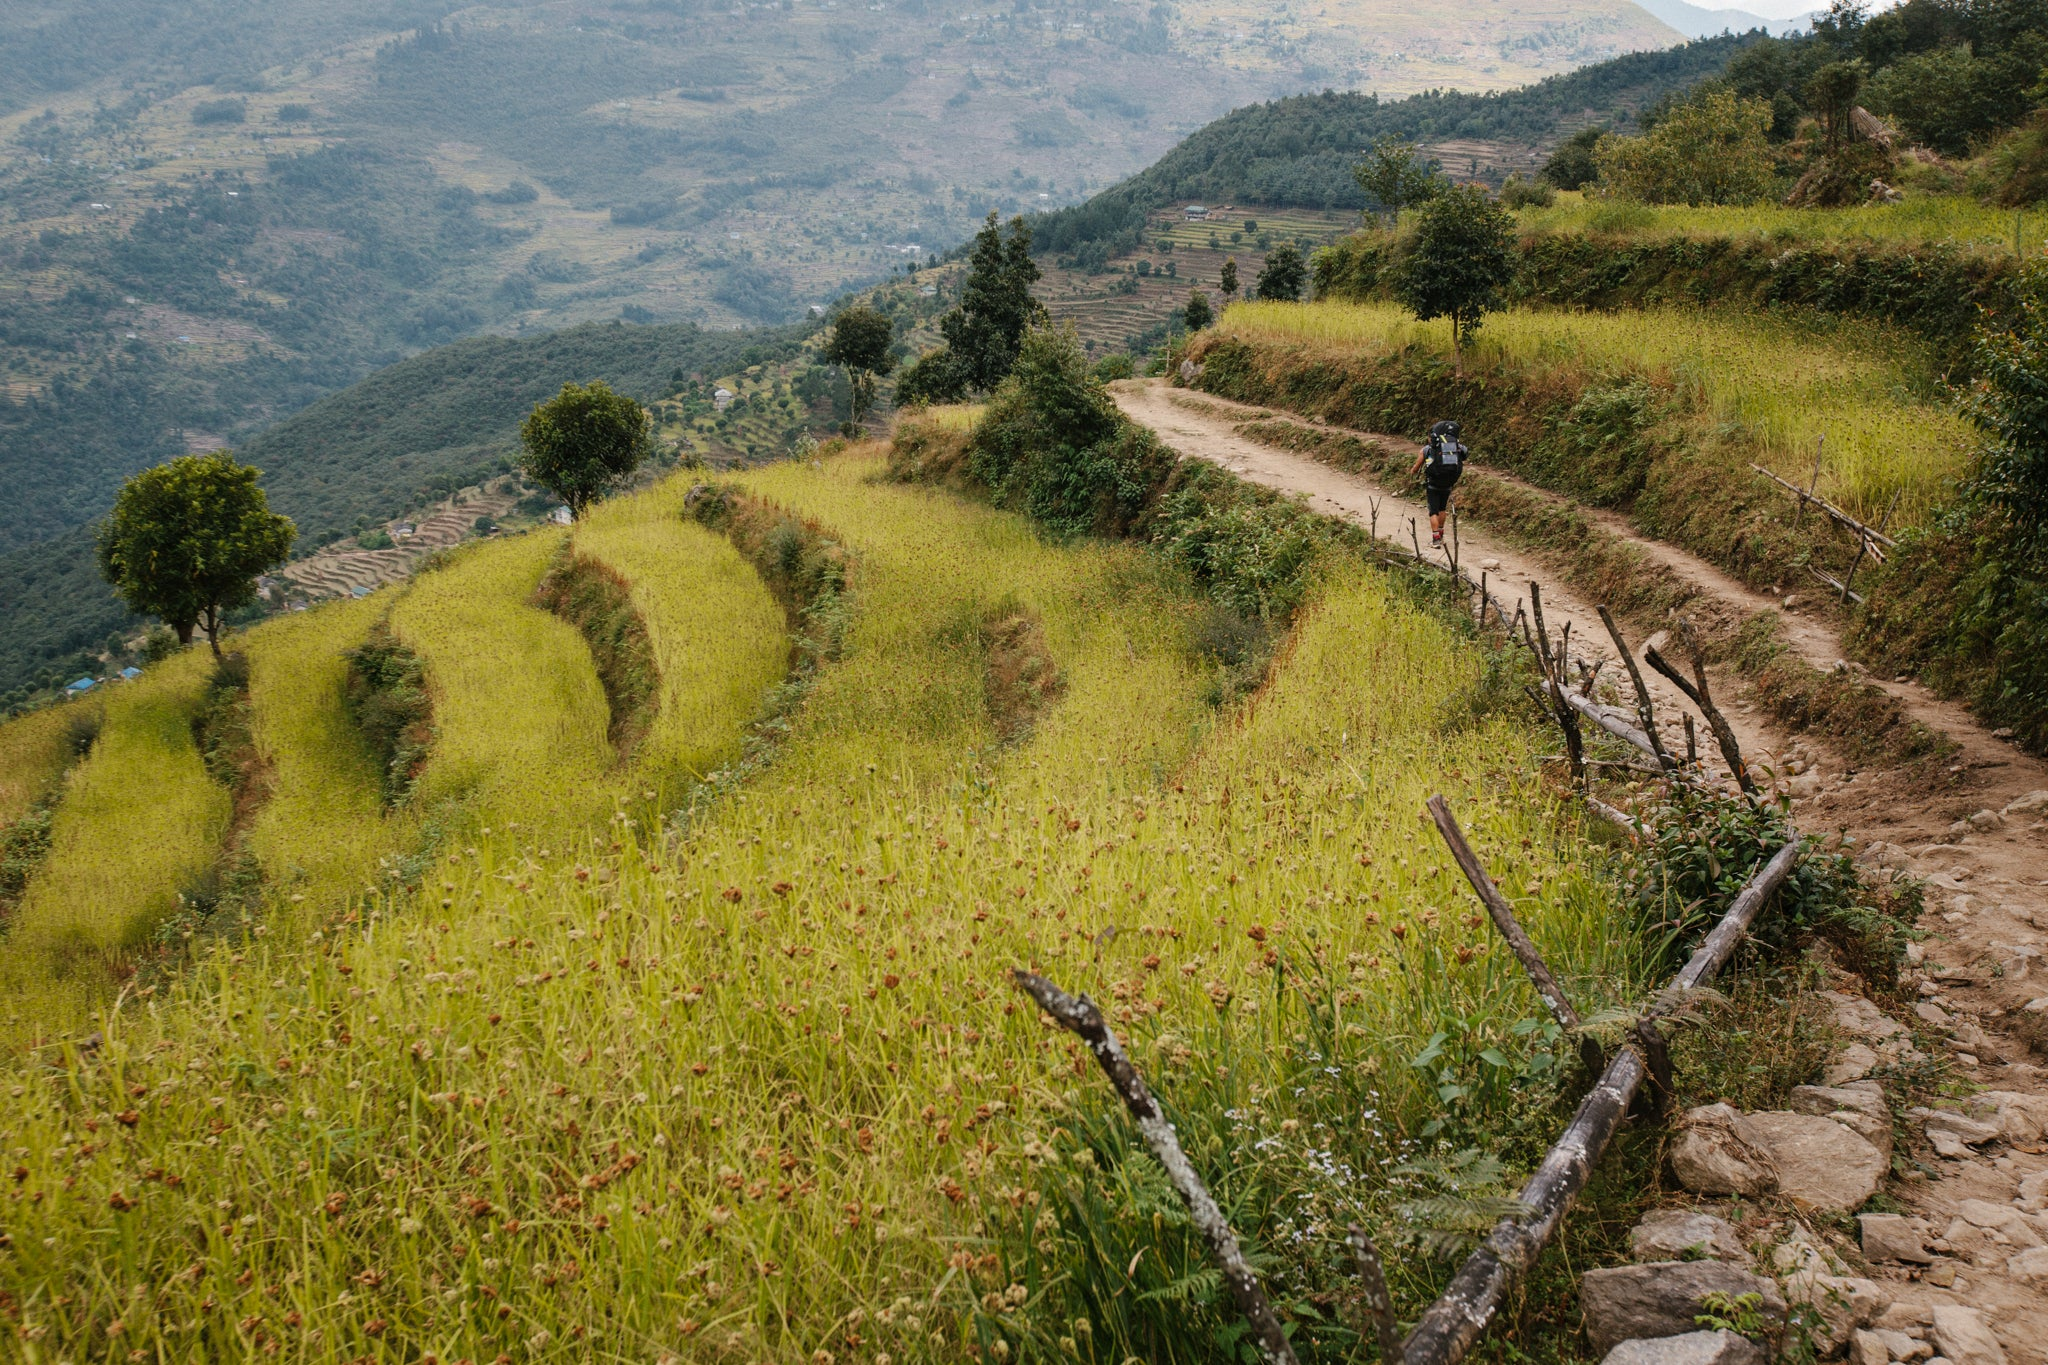 Hiking Nepal In Edmund Hillary's Footsteps